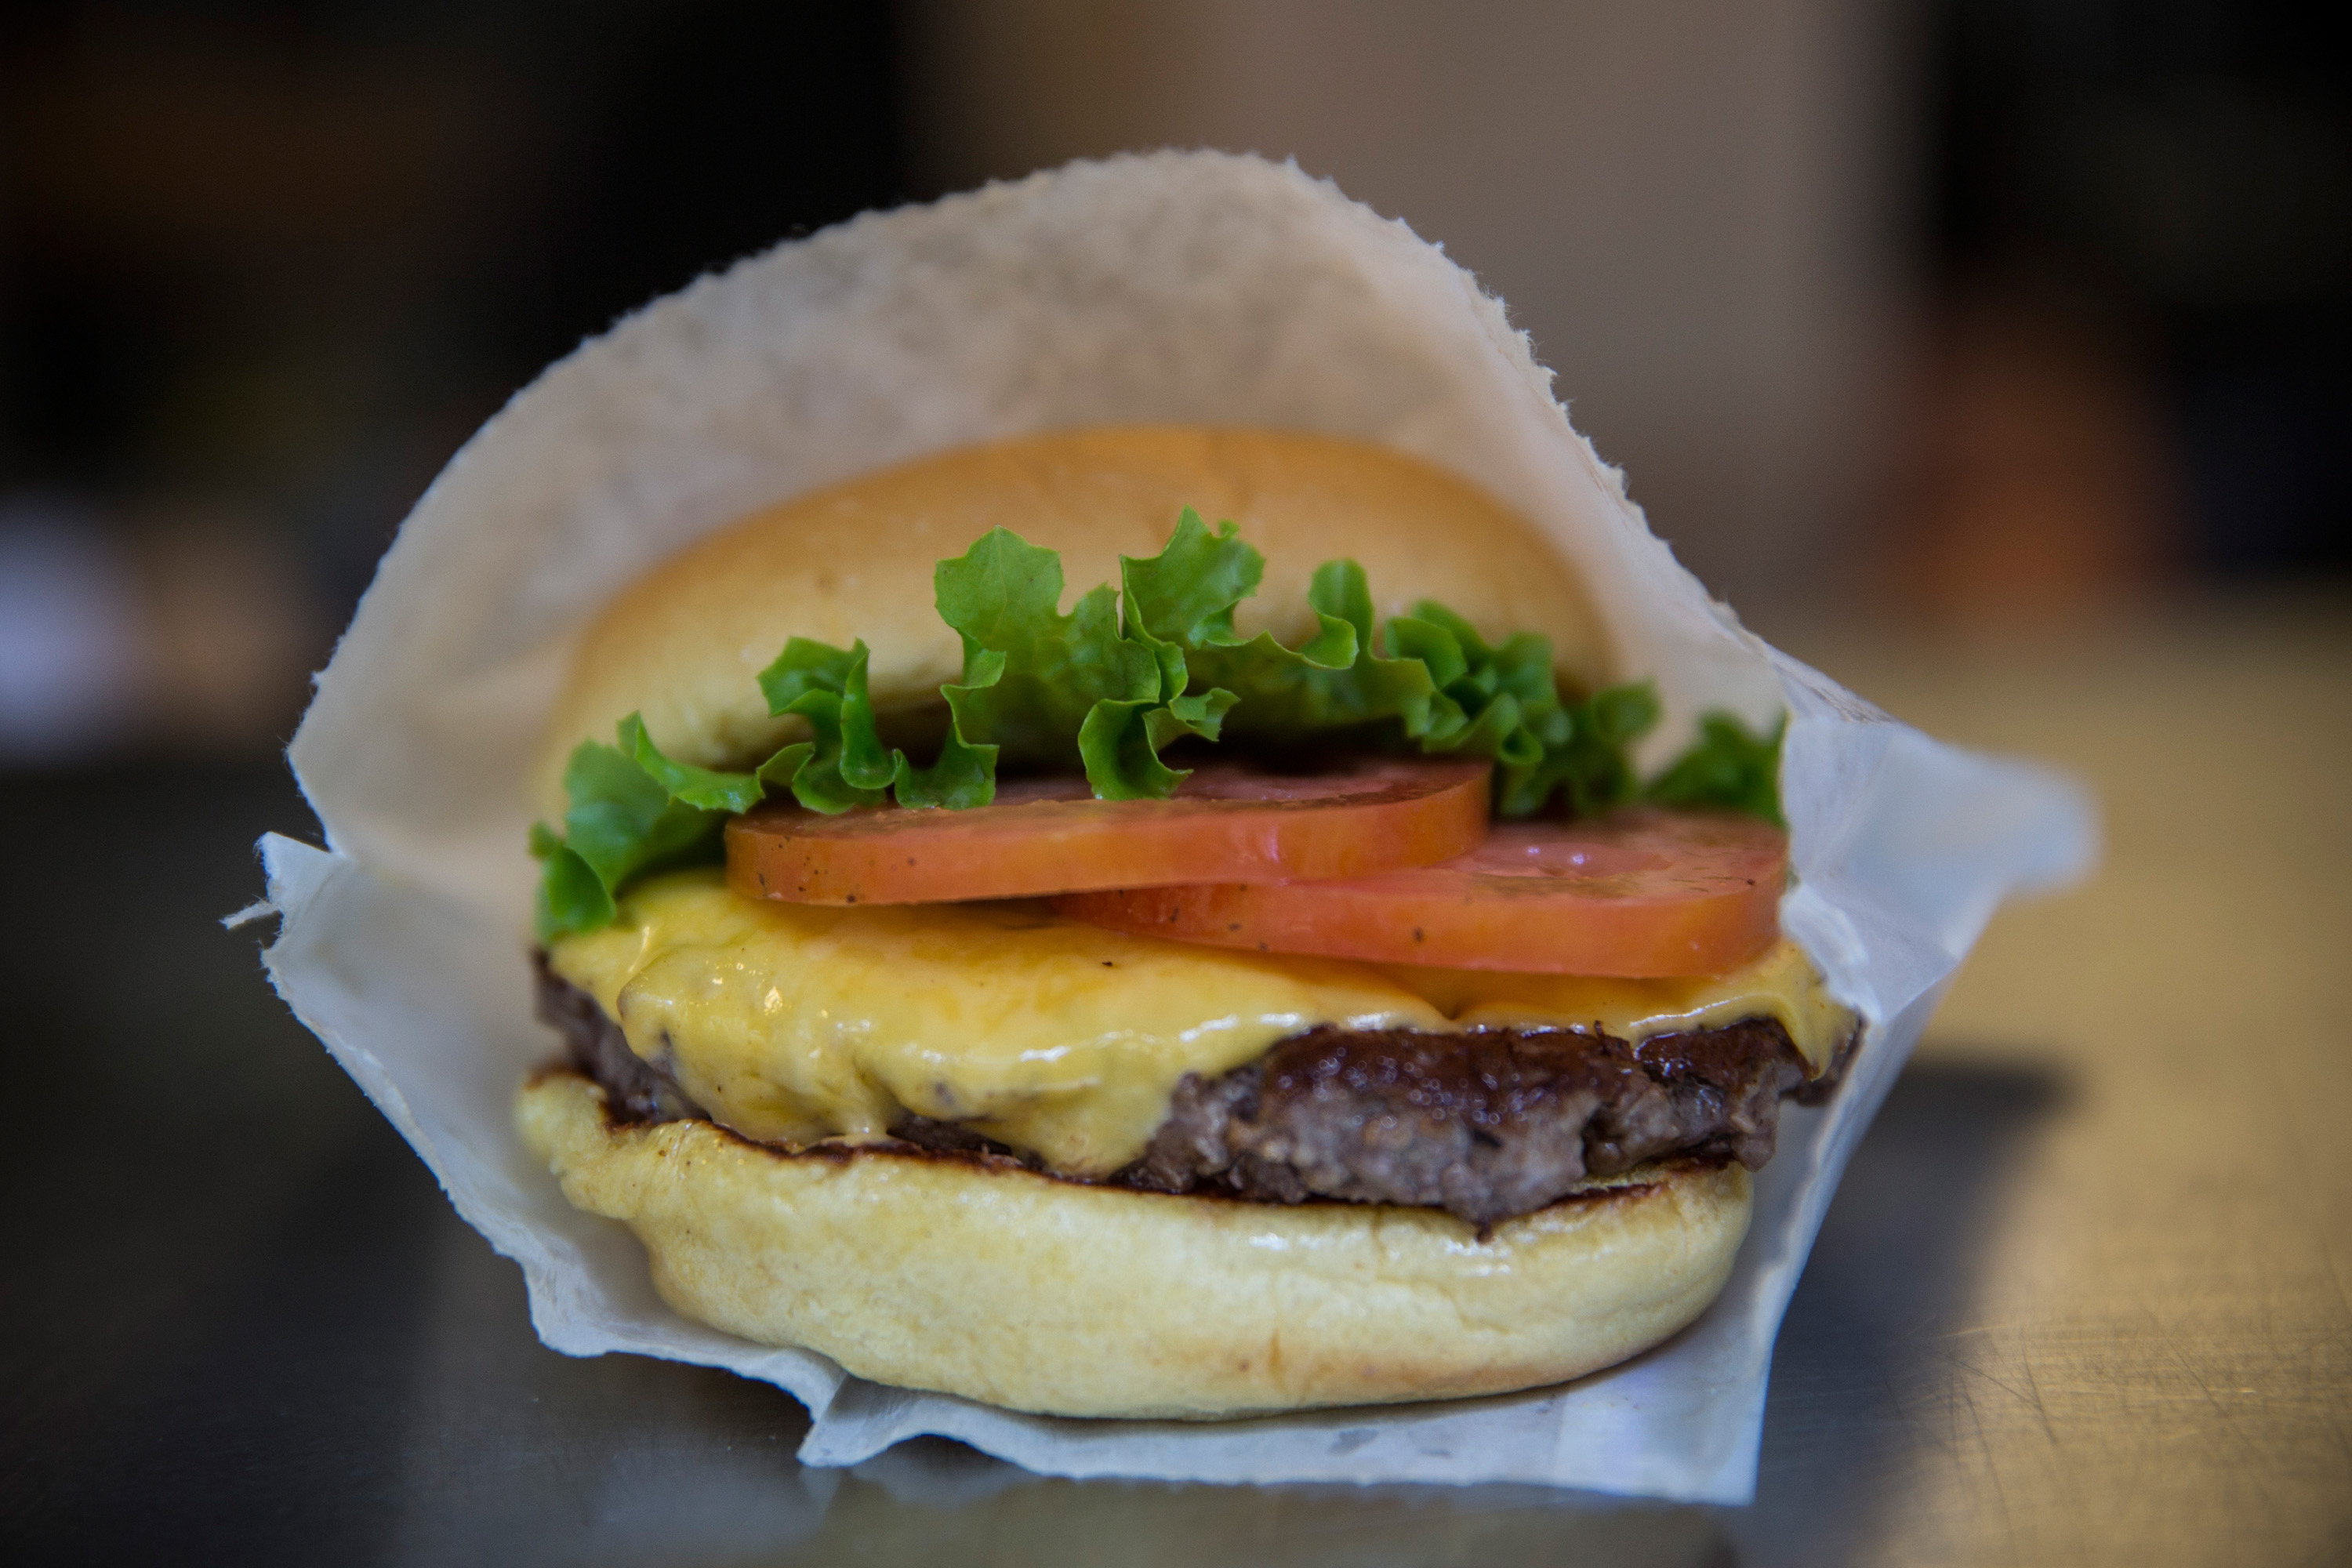 Get A Deal On National Cheeseburger Day Wish Tv Indianapolis News Indiana Weather Indiana Traffic